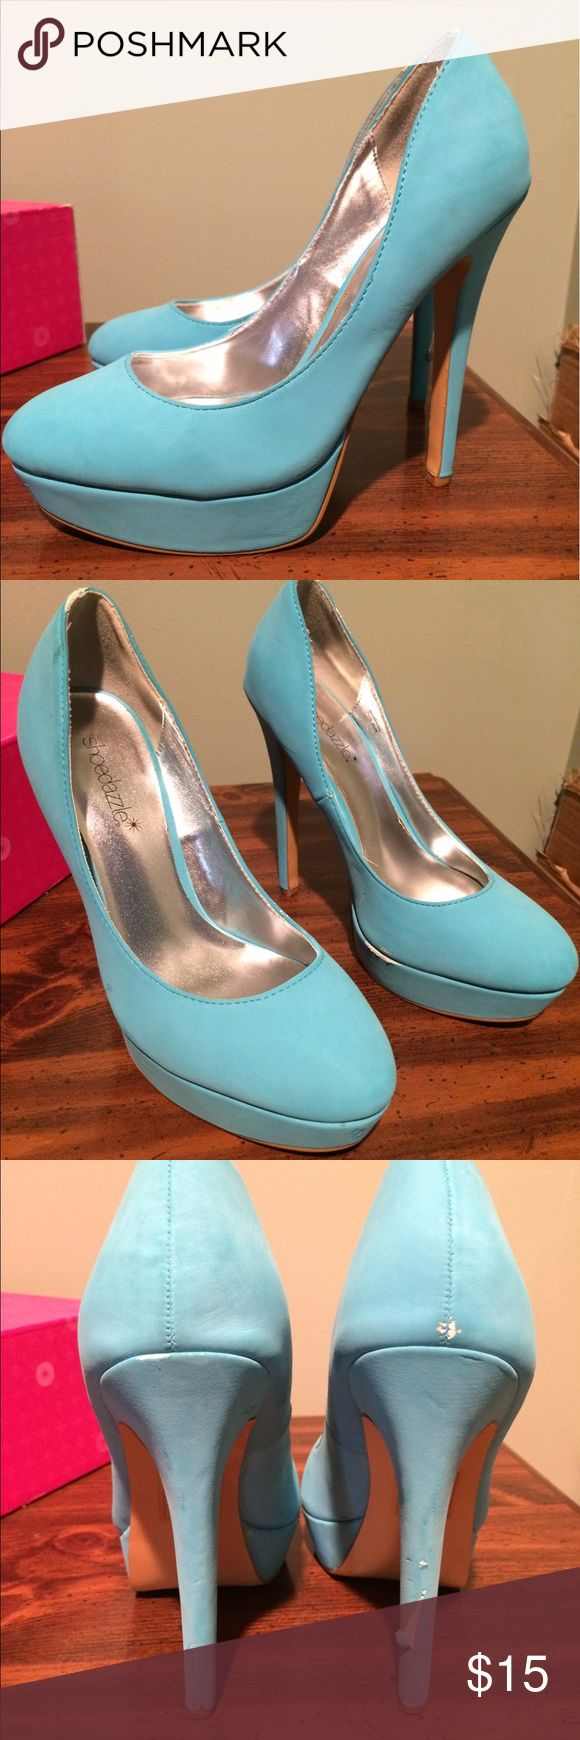 Shoe Dazzle blue heels Close to Tiffany blue in color, platform heels from Shoe Dazzle. Worn a handful of times, couple of scuffs on heels as shown! Shoe Dazzle Shoes Heels